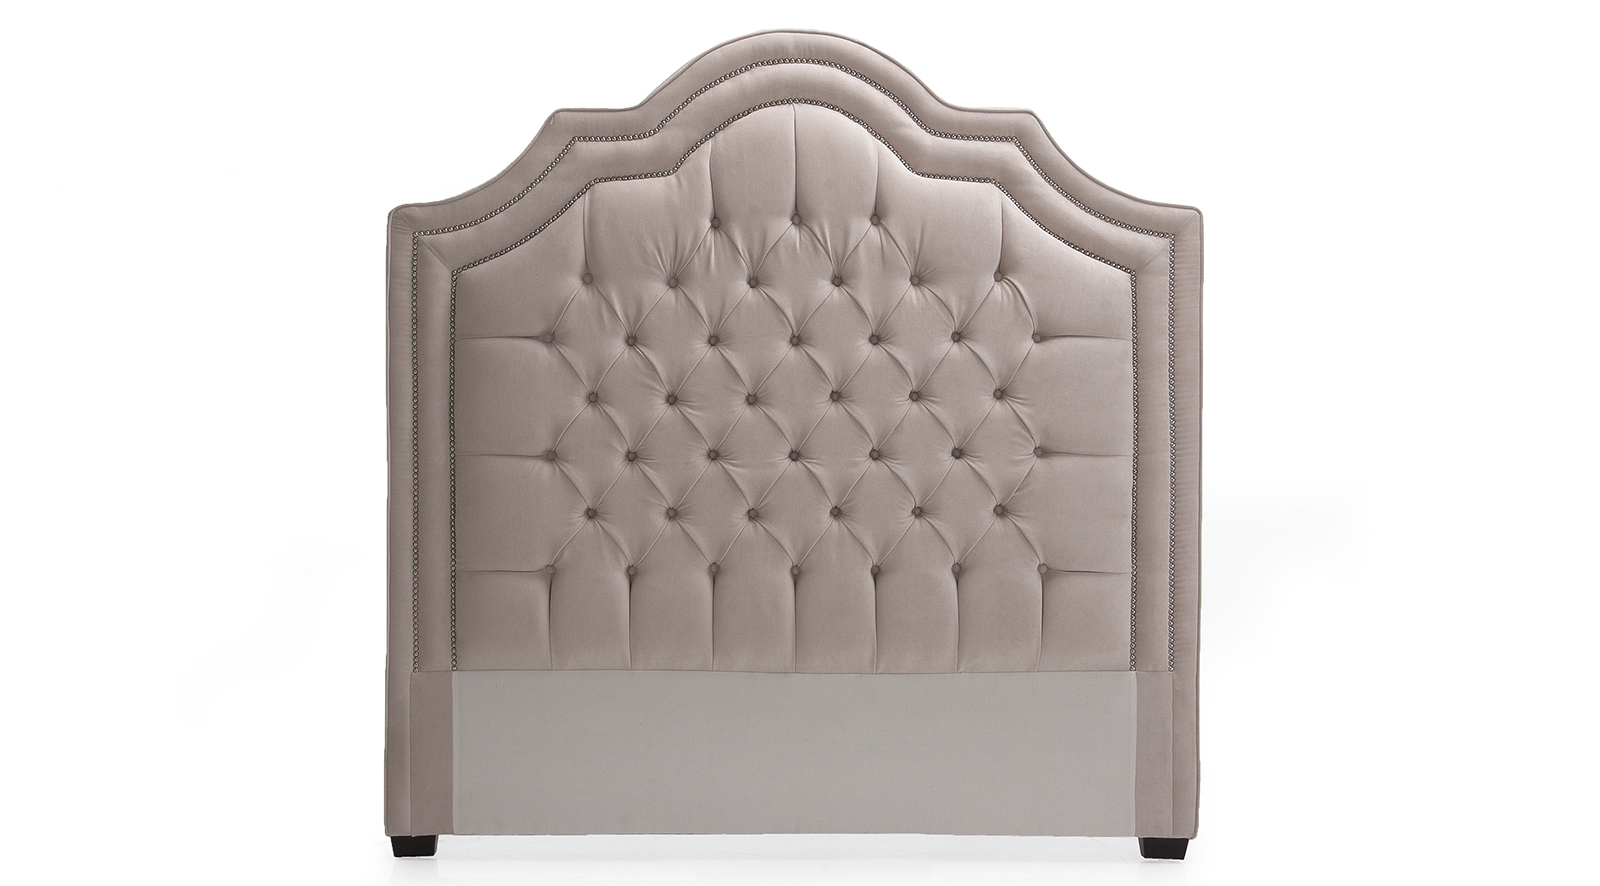 Leather Headboard & Base 111 - Queen